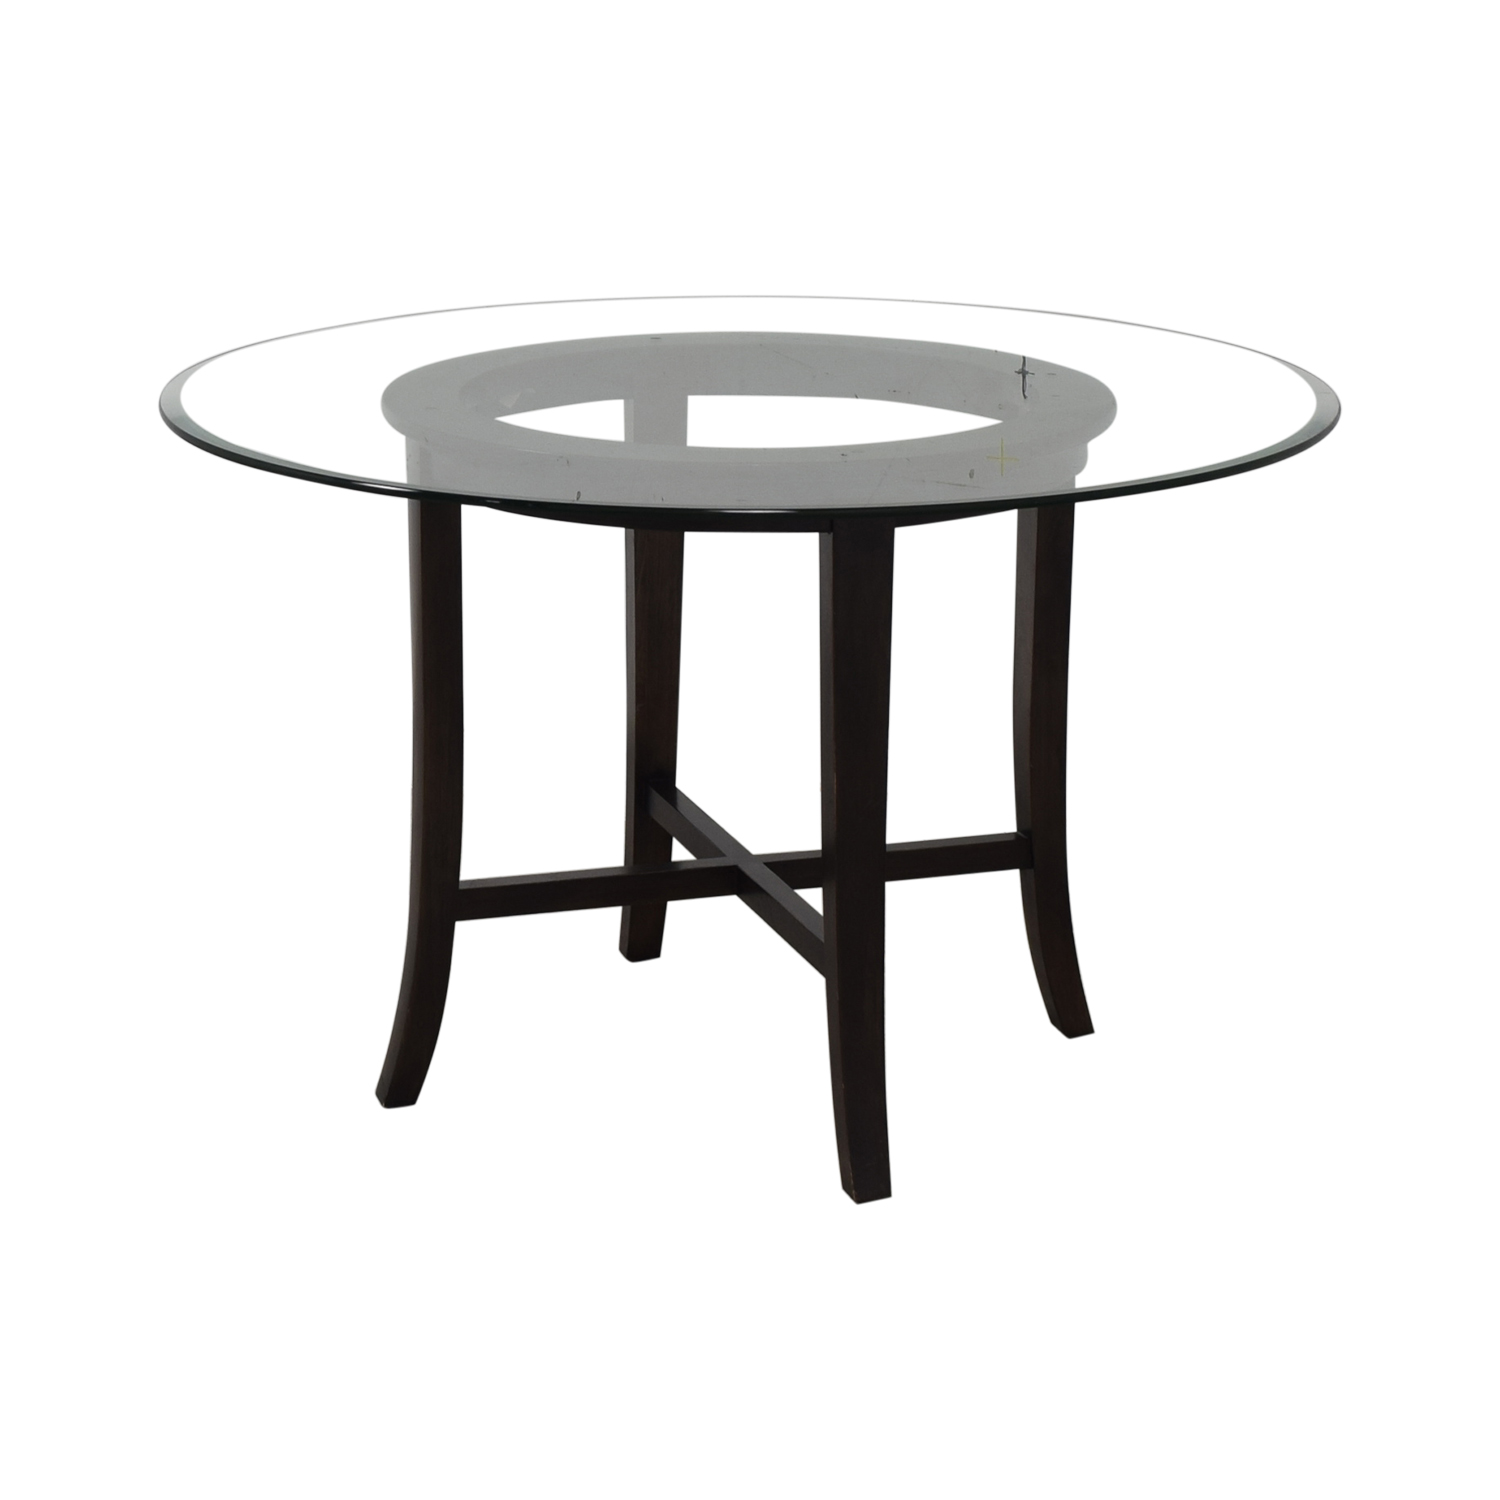 Crate & Barrel Crate & Barrel Halo Round Glass Dining Table coupon